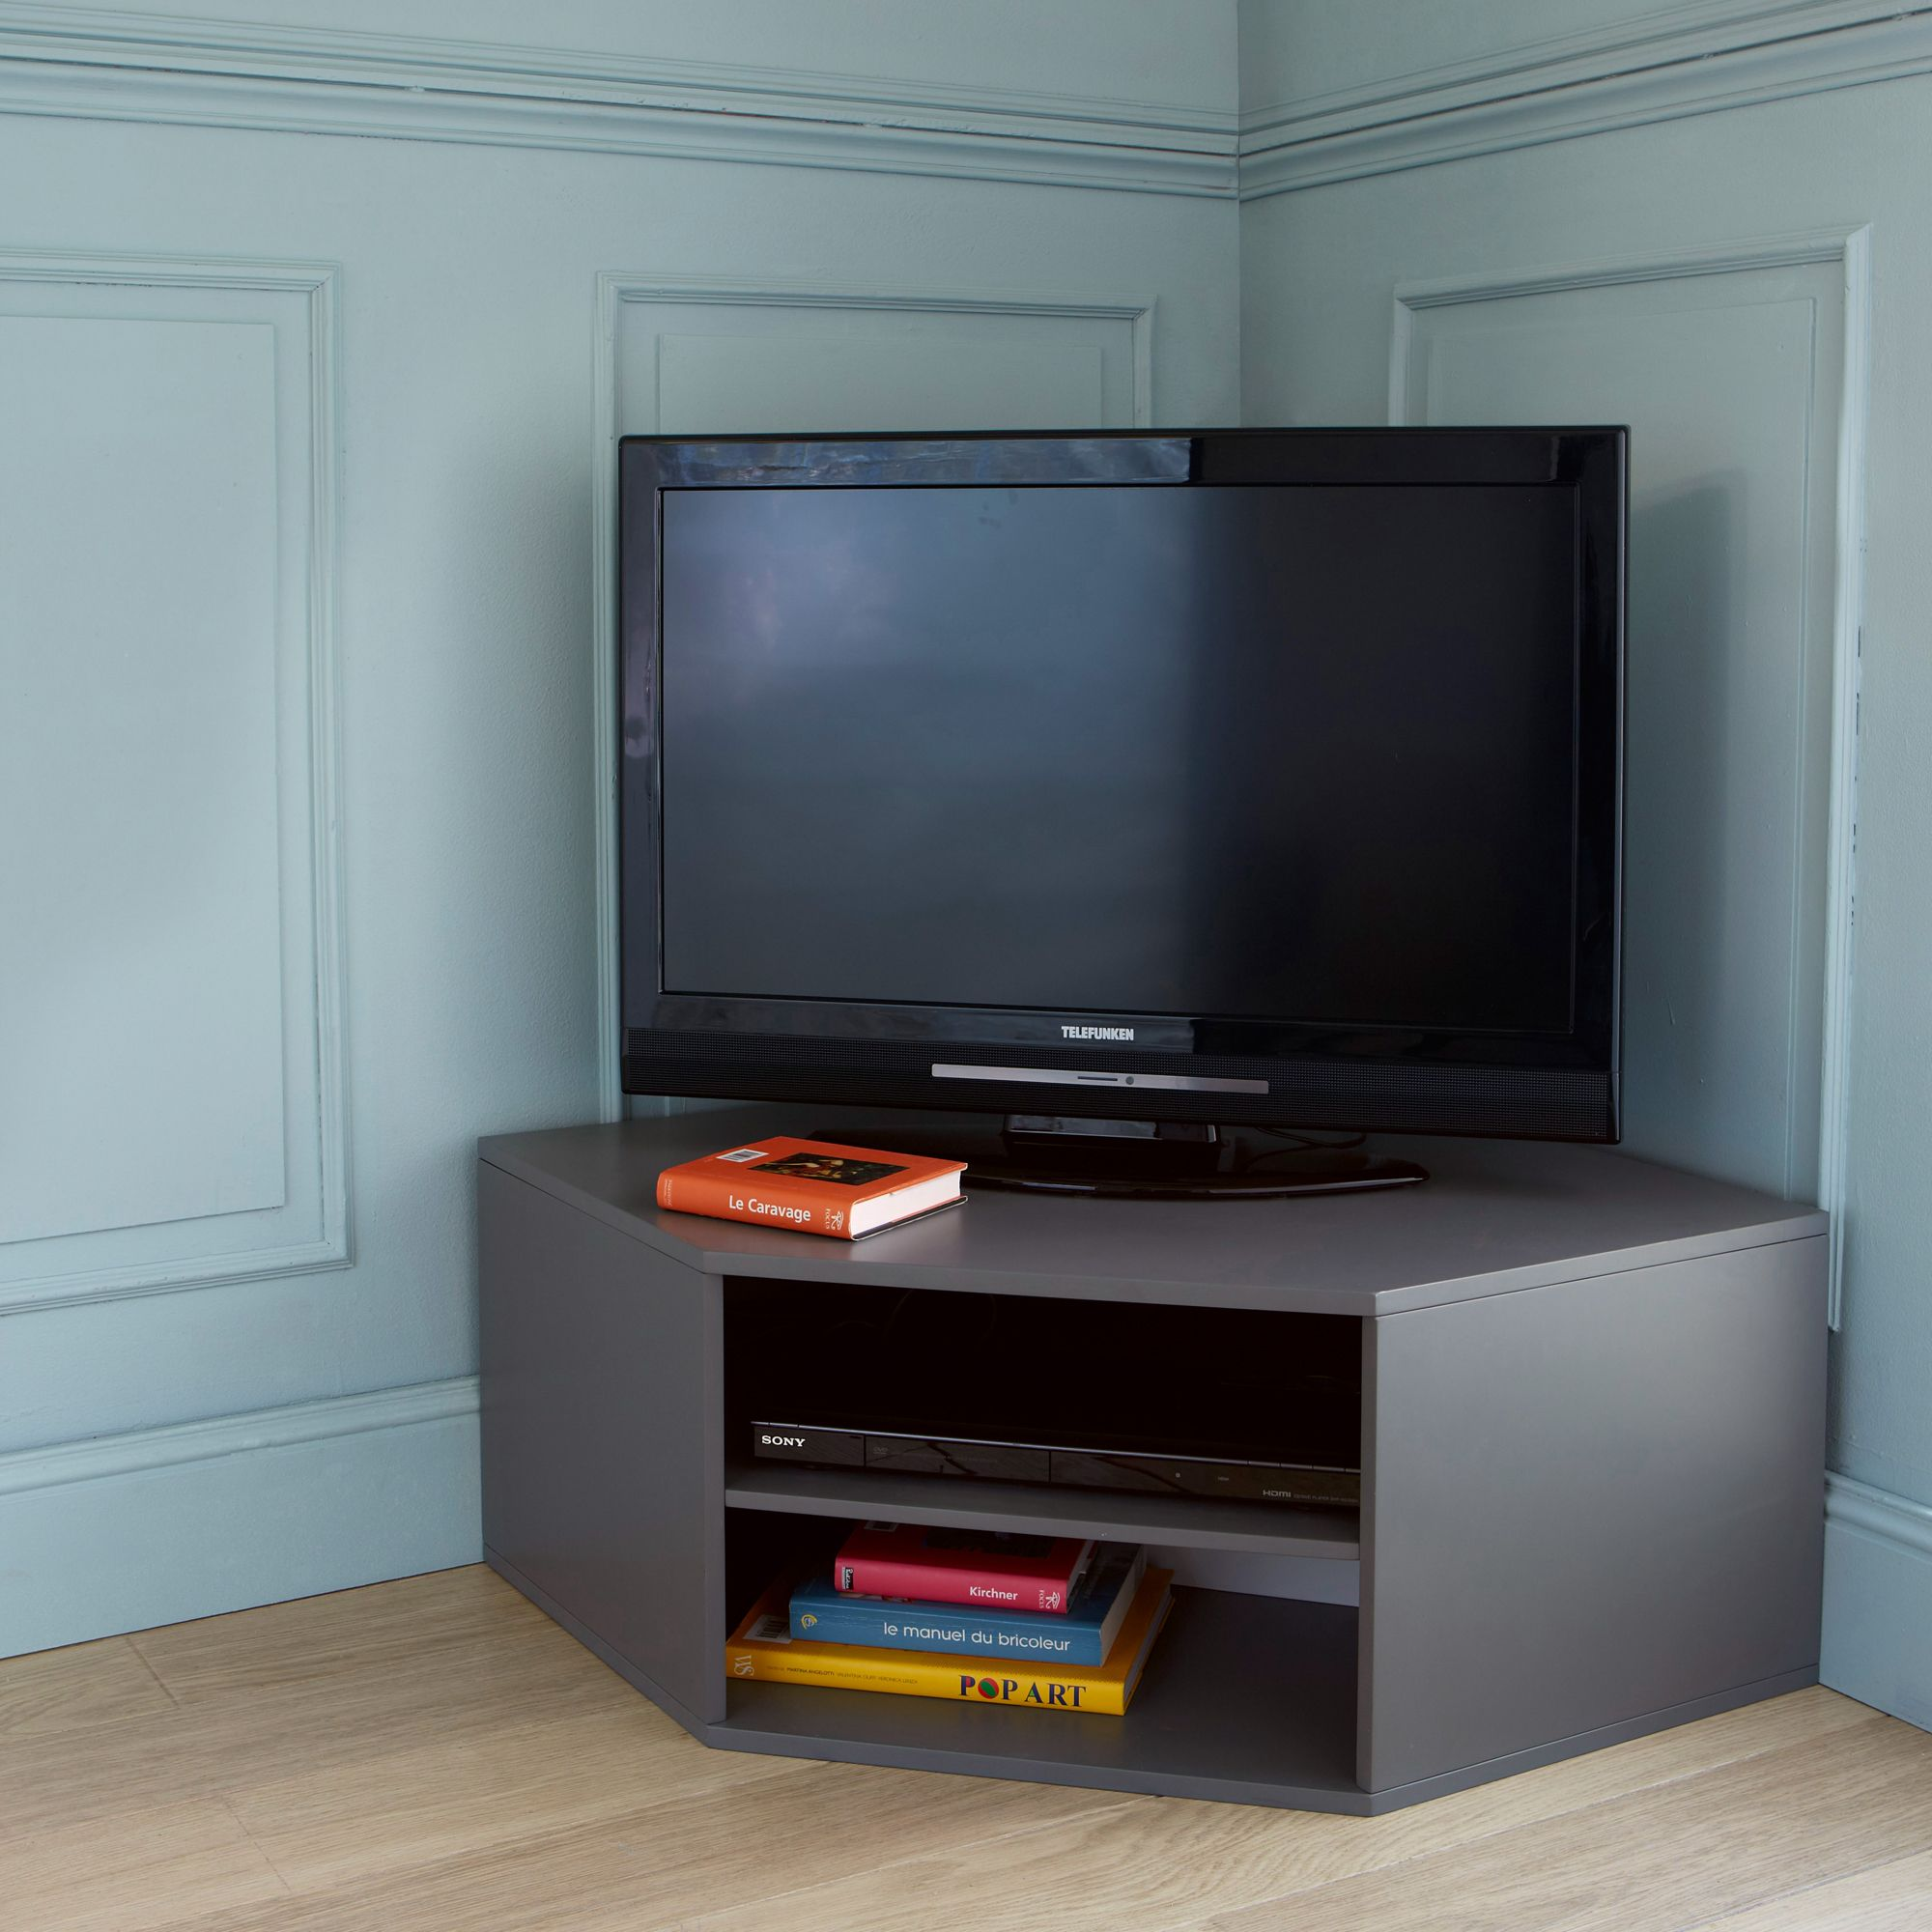 Meuble Tv D Angle Kolorcaz 3 Suisses Meuble Tv Pinterest  # Meuble D'Angle Tv Contemporain